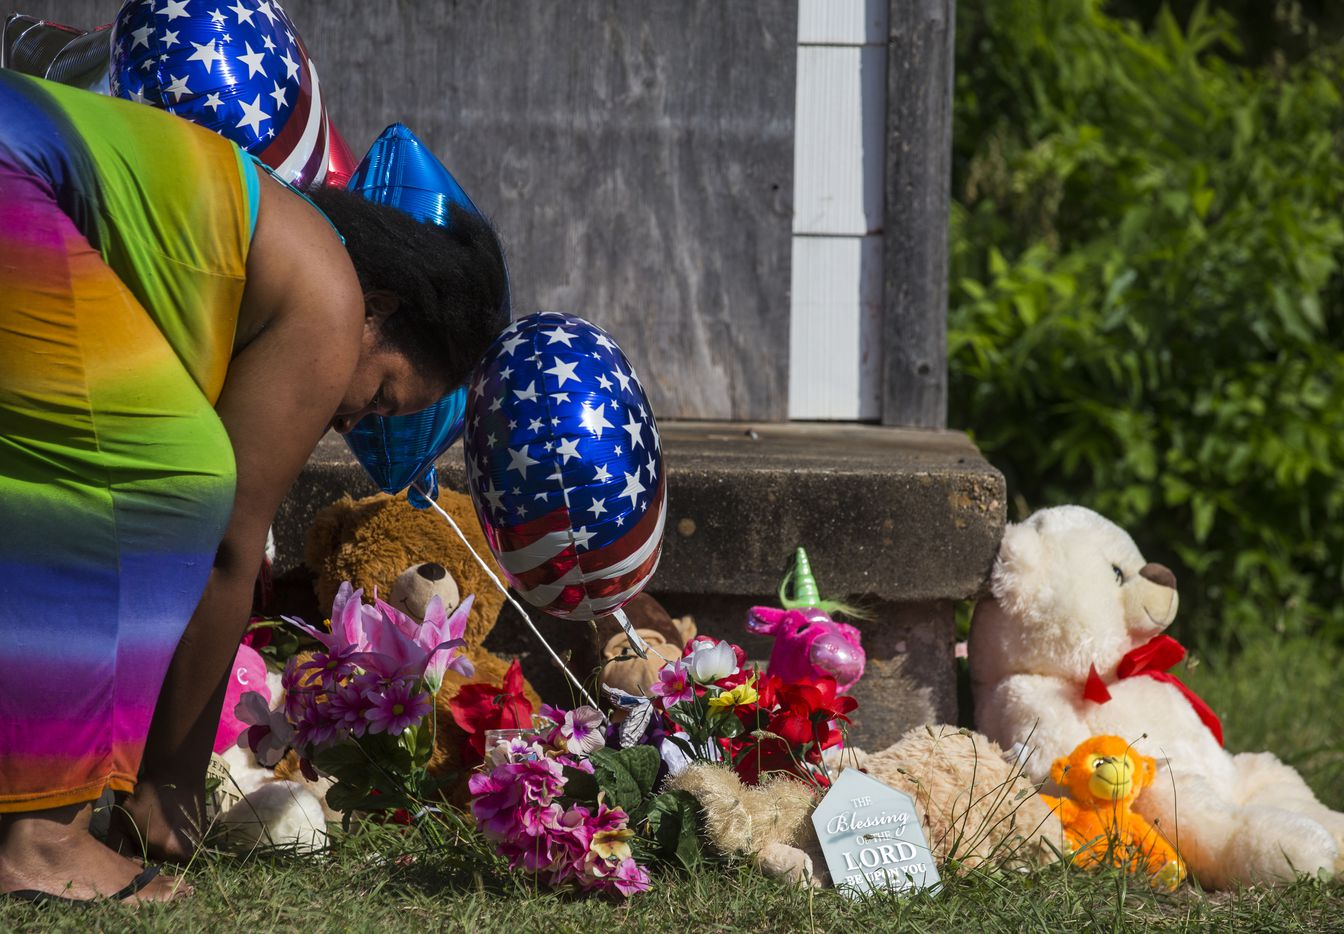 Adrian Moseley, of Dallas, plants a flower at a memorial as balloons and flowers wave in the wind at a home in the 2200 block of East Kiest Boulevard where a missing Lancaster teenager and a man were found dead overnight Sunday, July 2, 2017, in Dallas.